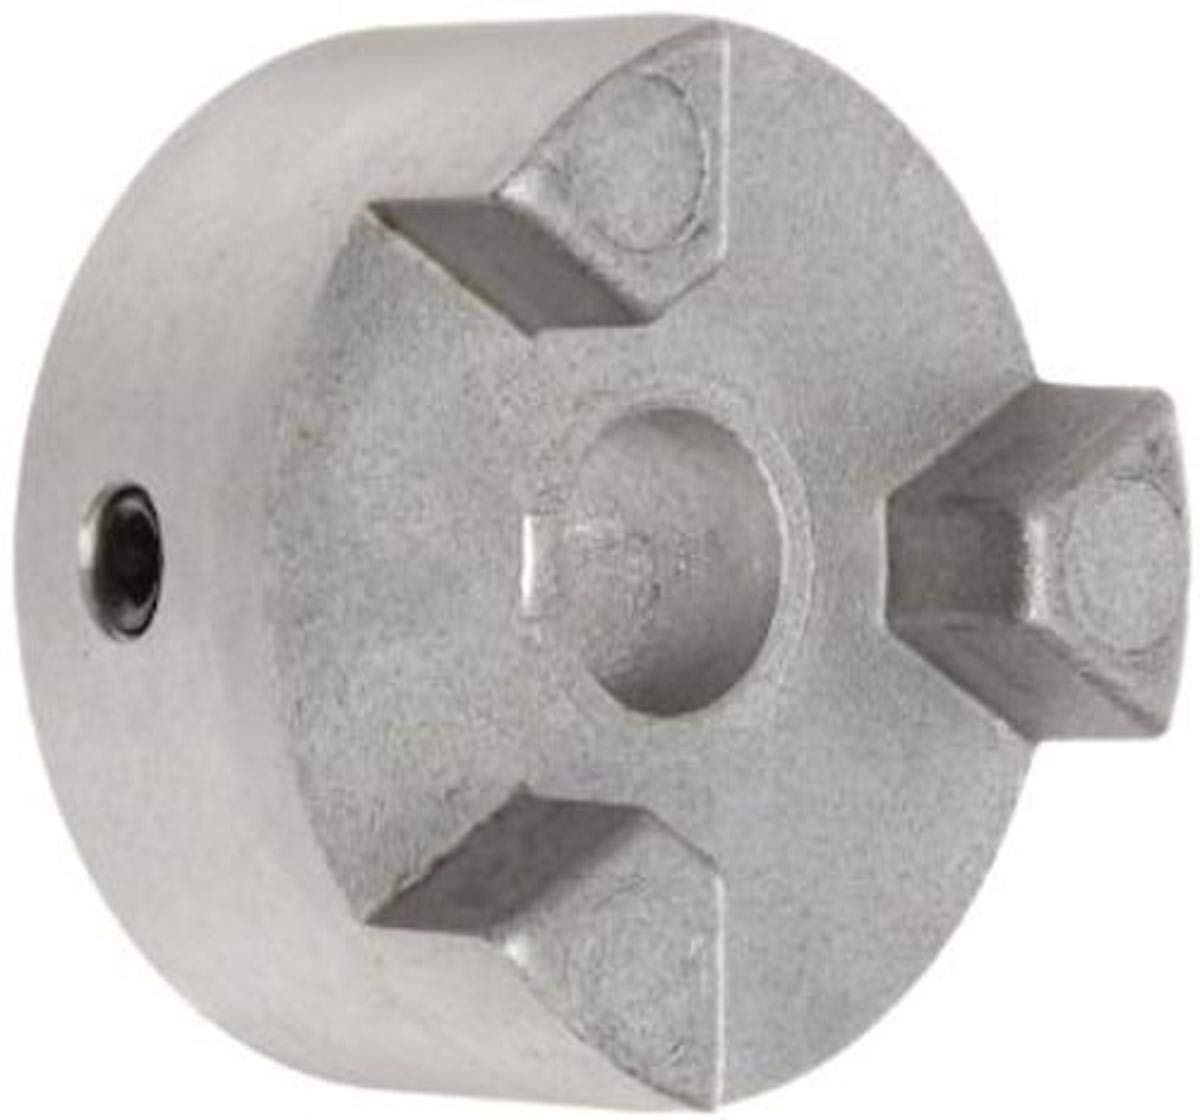 excellence Lovejoy 10796 Size AL090 Jaw Hub 0.5'' Max 48% OFF Coupling Aluminum Inch